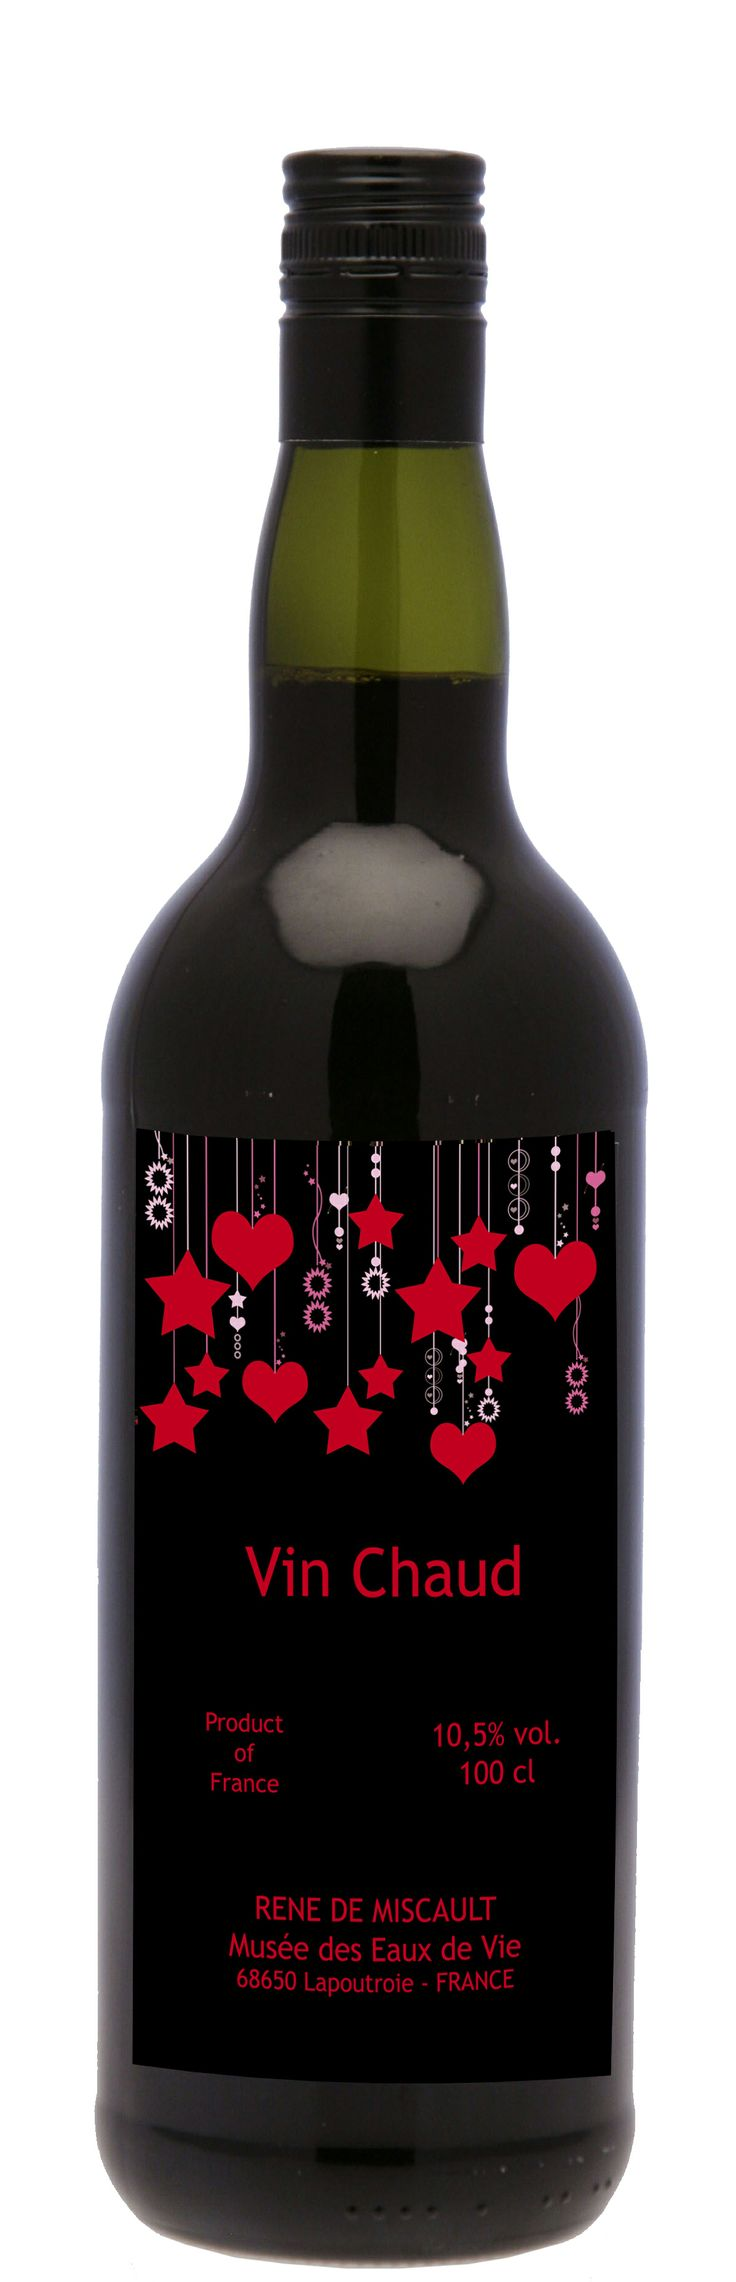 This lovely Vin Chaud is a mulled wine made from red wine from France with 100% natural ingredients. Perfect to warm for drinking or cook with it for your favourite dessert. You can find it at the coming Vinexpo Asia-Pacific from our exhibitor Distillerie Paul Devoille